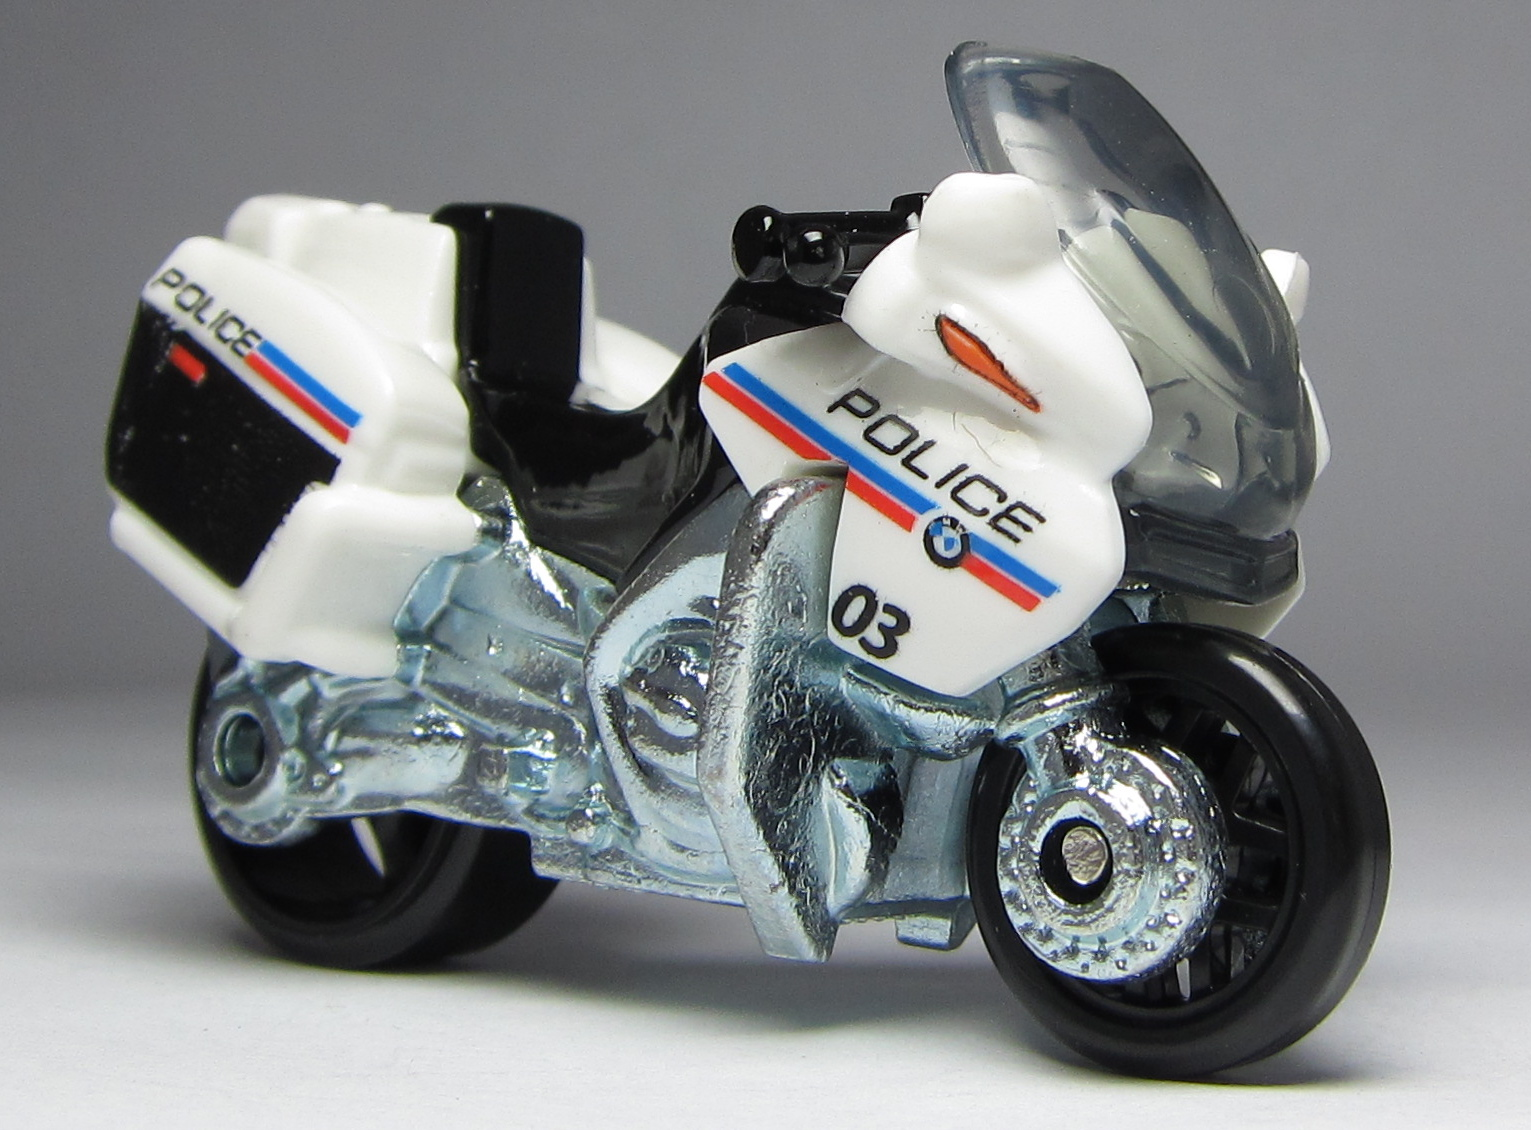 first look matchbox bmw r1200 rt p police motorcycle the lamley group. Black Bedroom Furniture Sets. Home Design Ideas